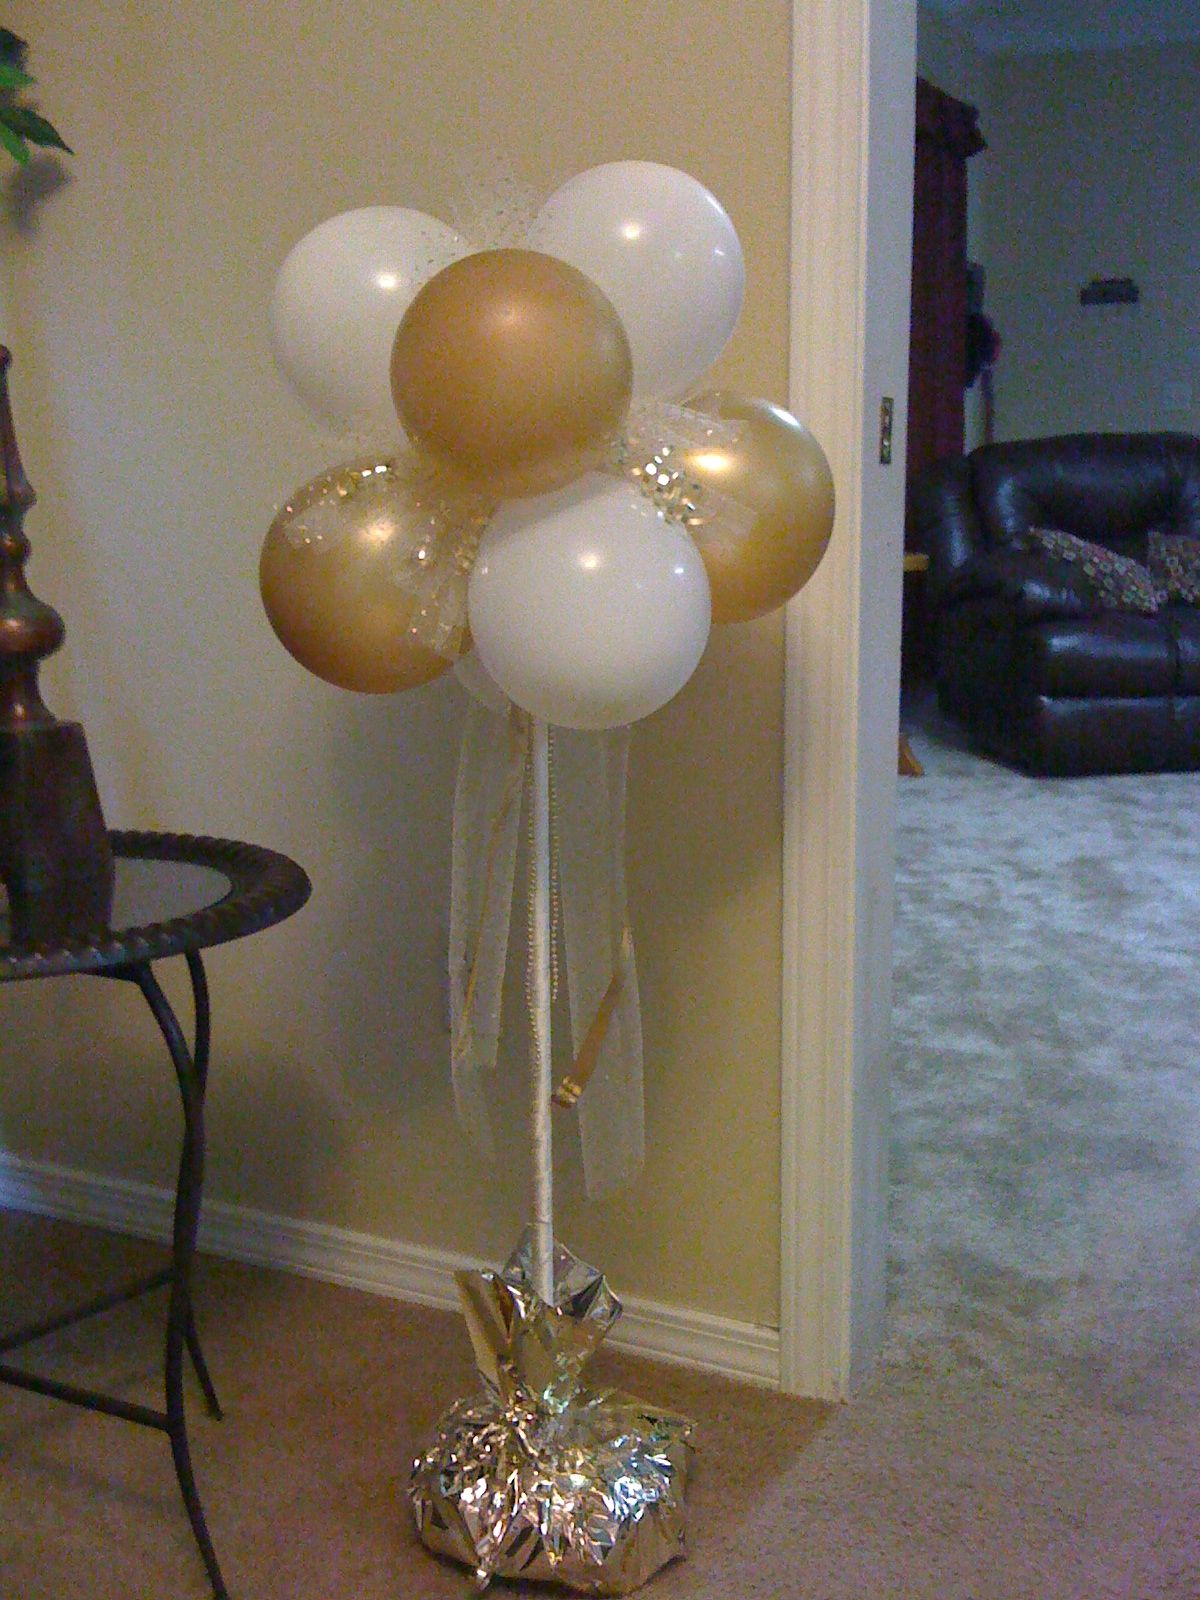 50th Anniverary Balloon Bouquet The Dowel Rod Is Inserted In A